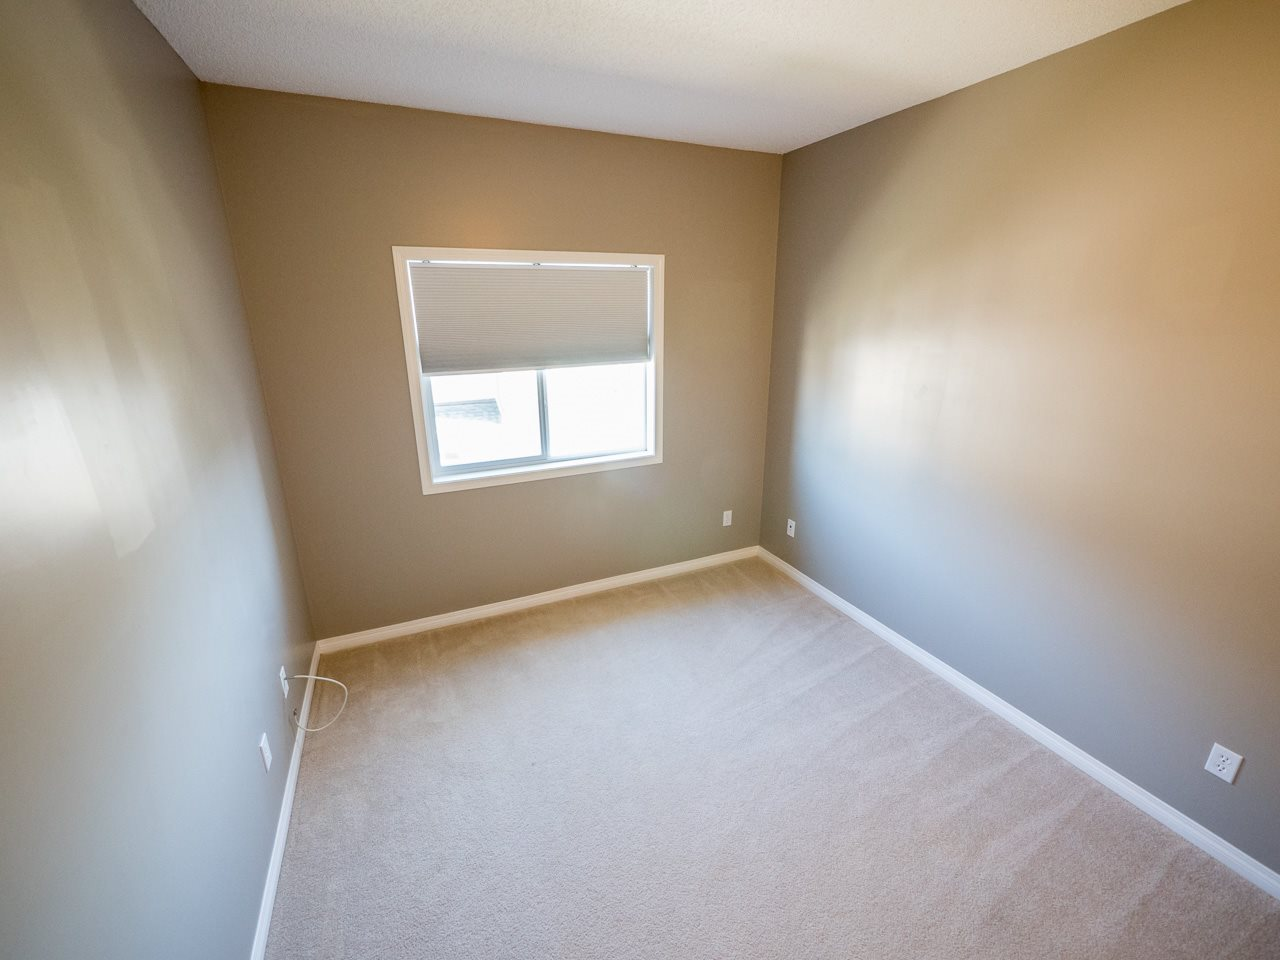 Photo 15: 71 3040 SPENCE Way in Edmonton: Zone 53 Townhouse for sale : MLS(r) # E4063695